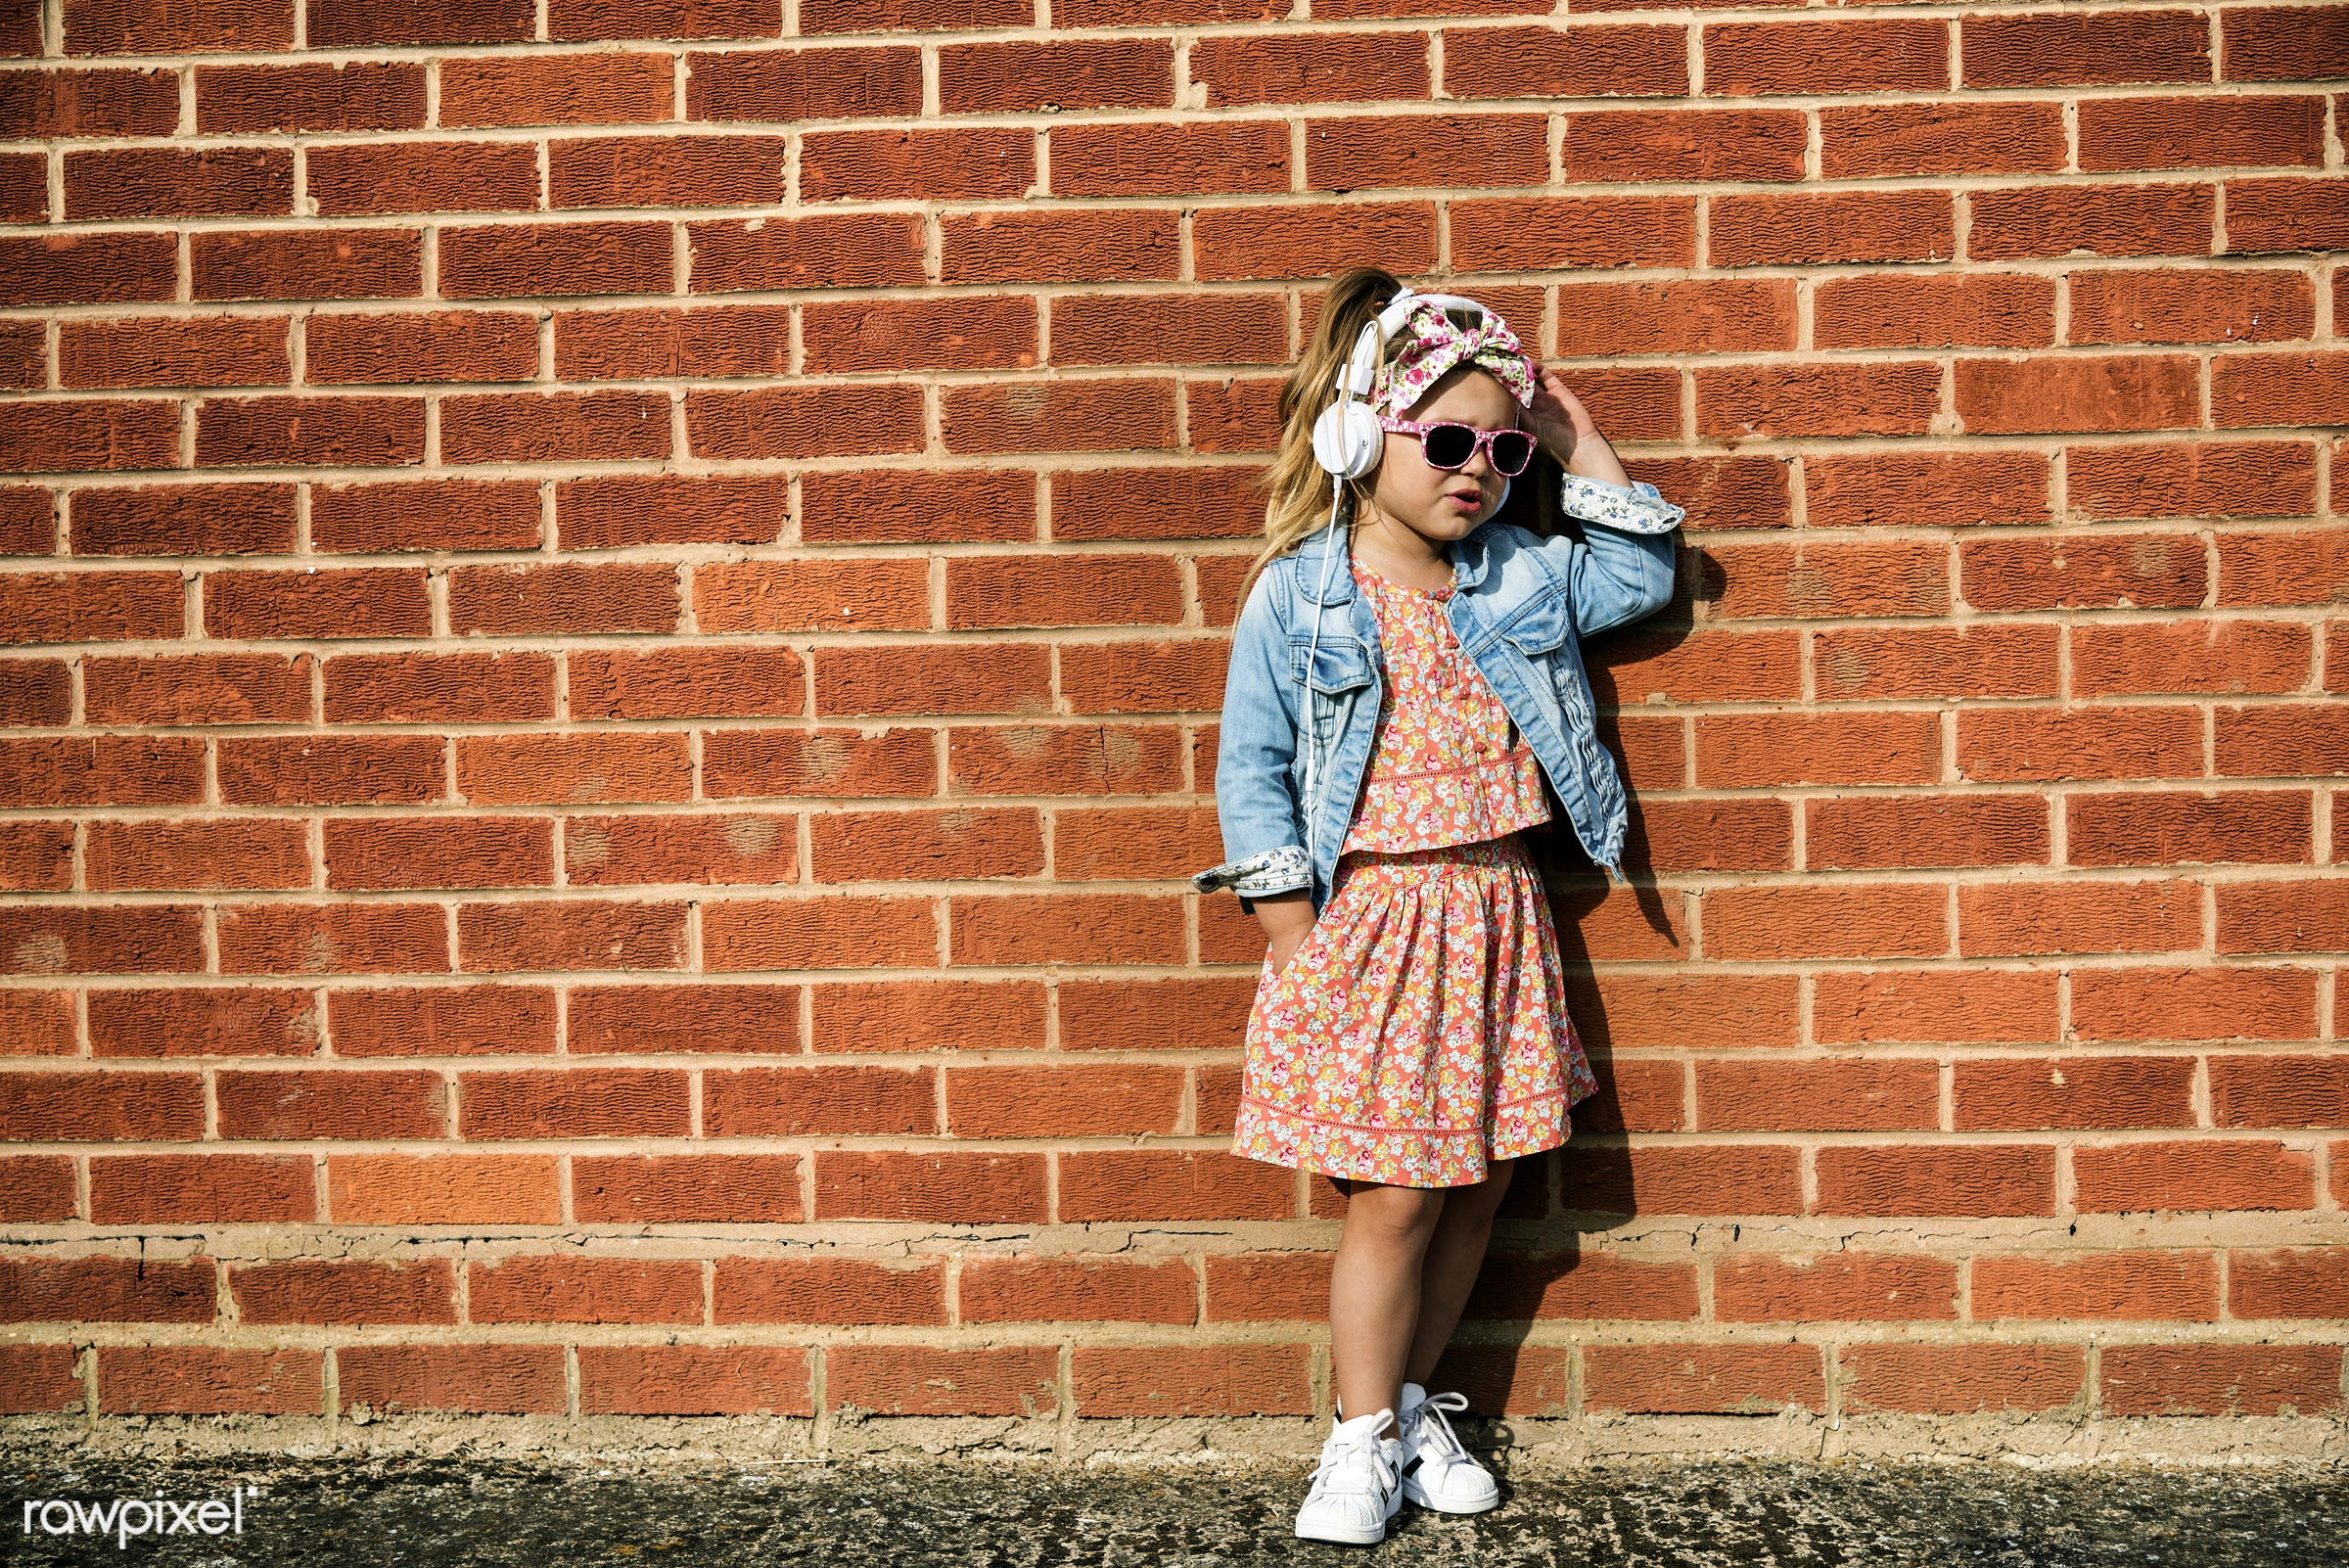 adorable, baby, beautiful, beauty, charming, cheerful, child, childhood, clothes, clothing, cute, daughter, doll, dress,...